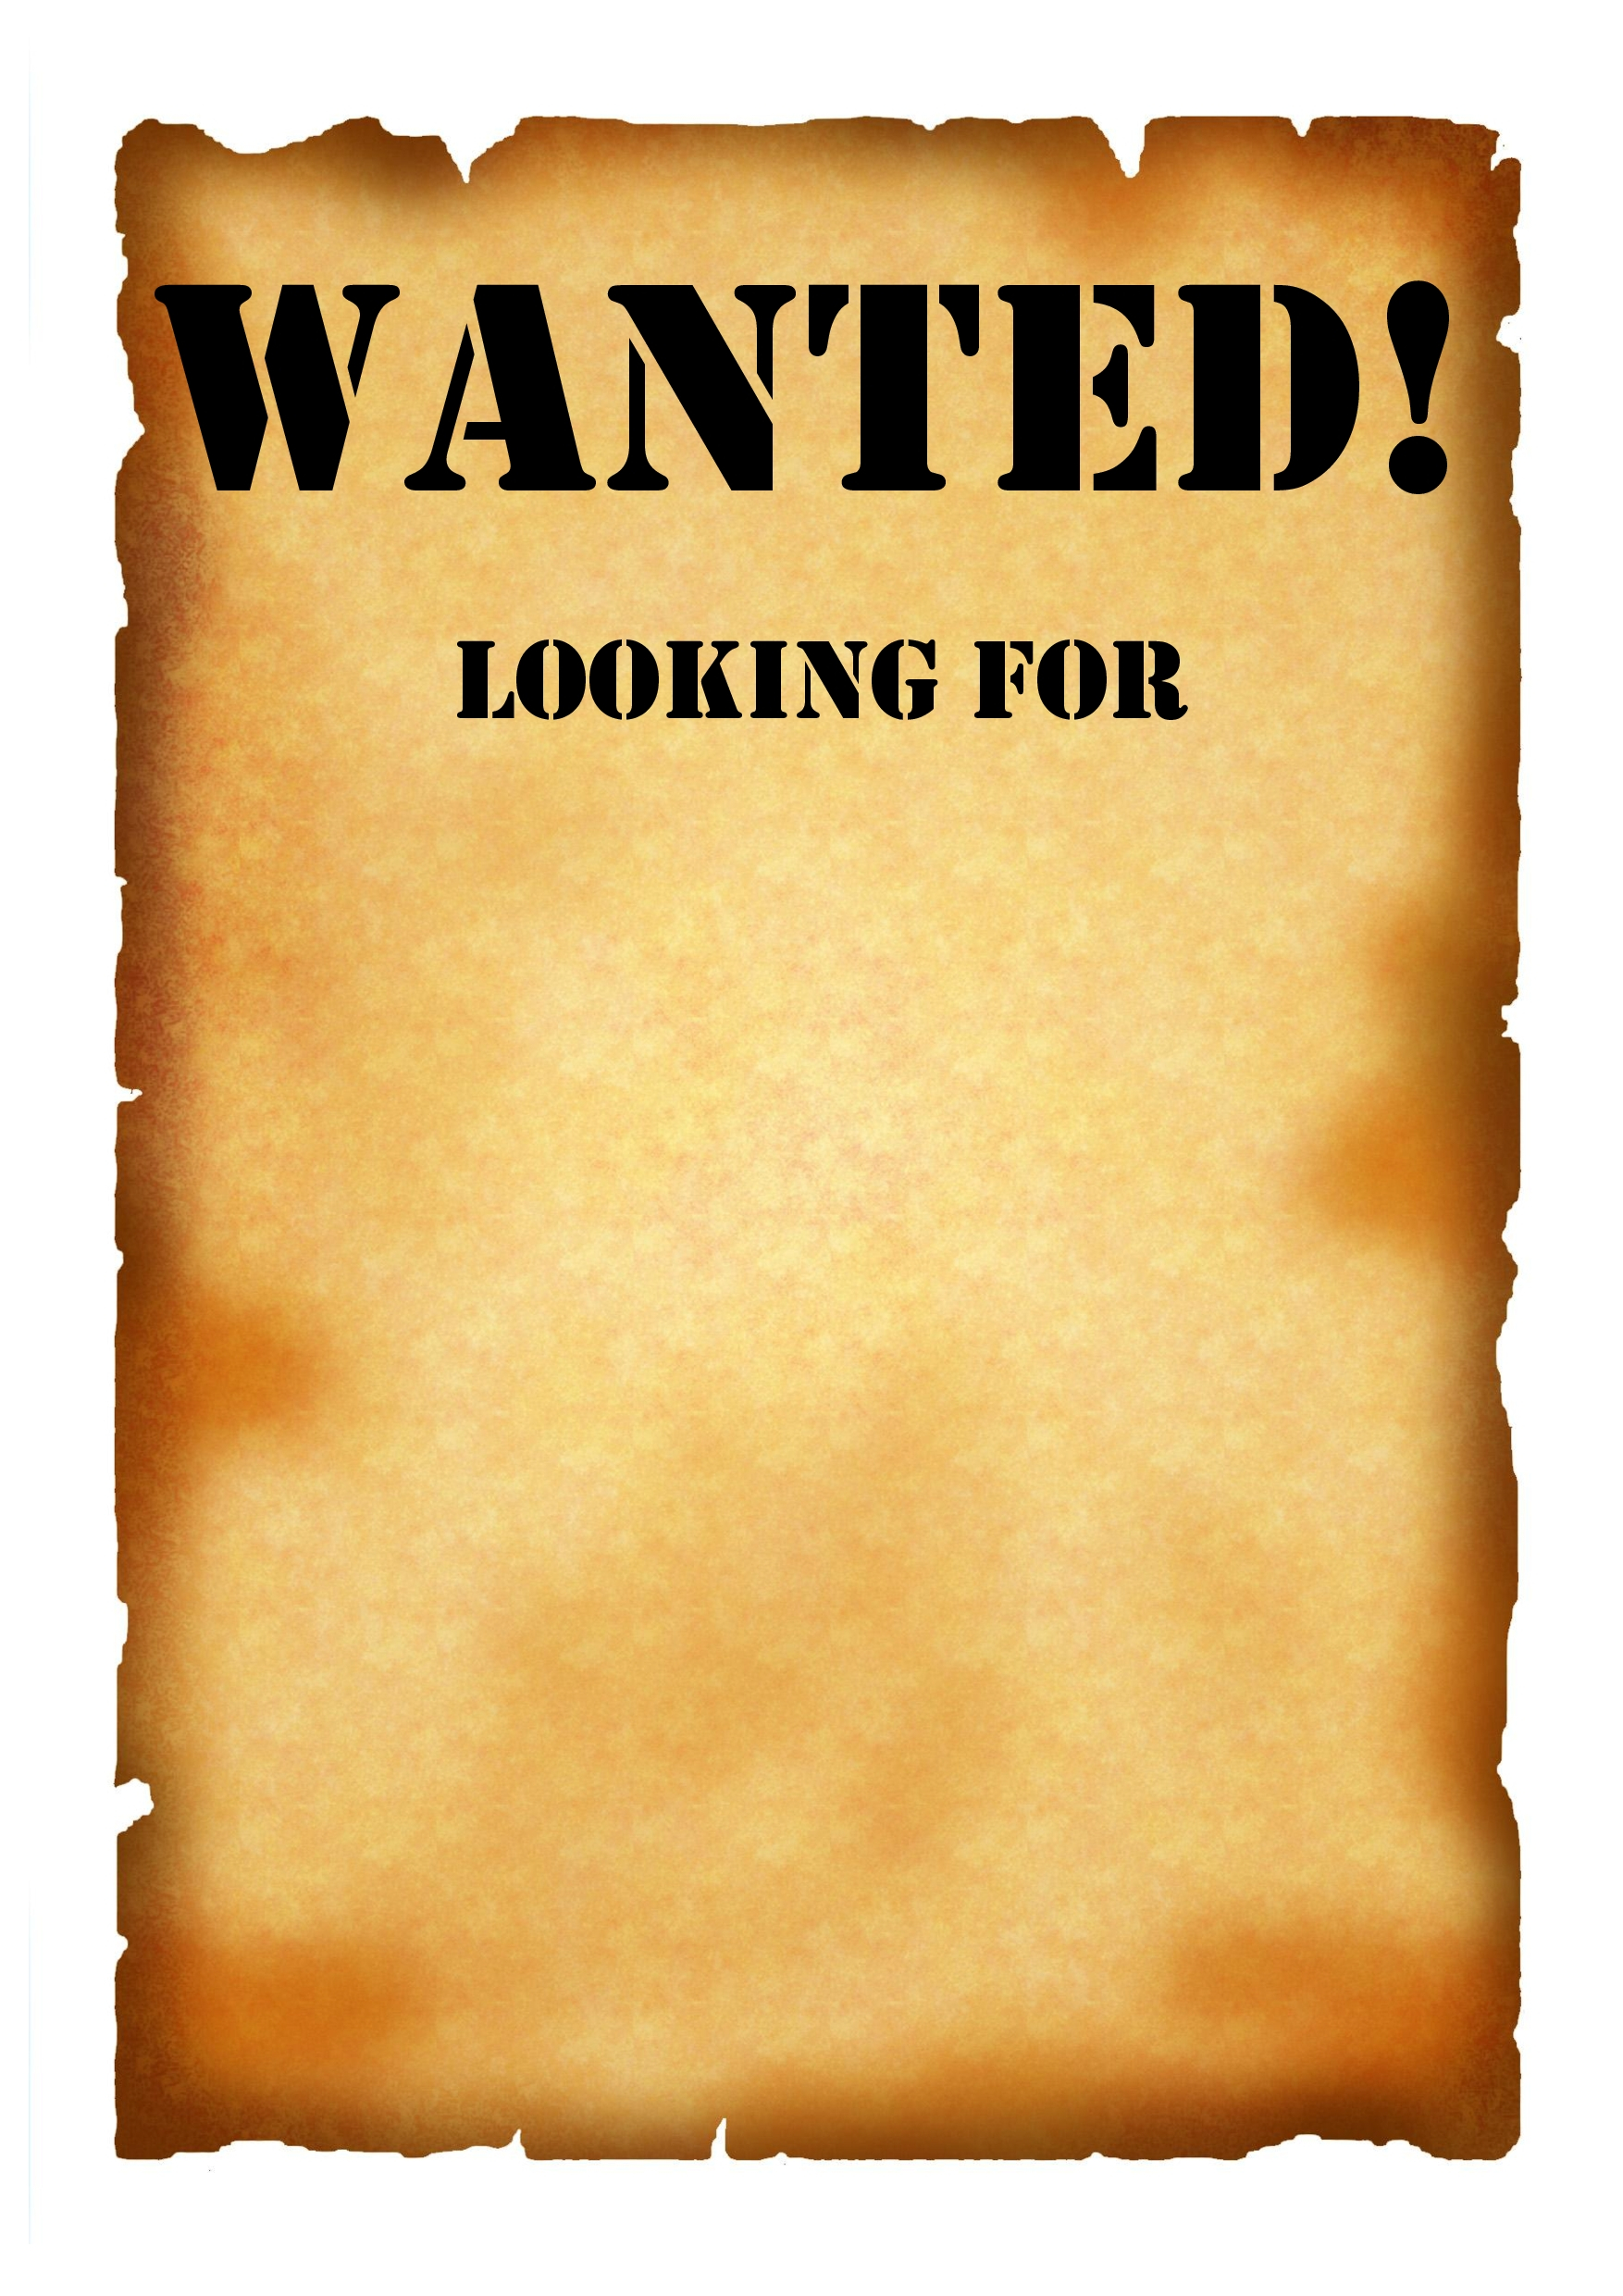 Wanted Poster Printable | Best Template & Design Images - Wanted Poster Printable Free